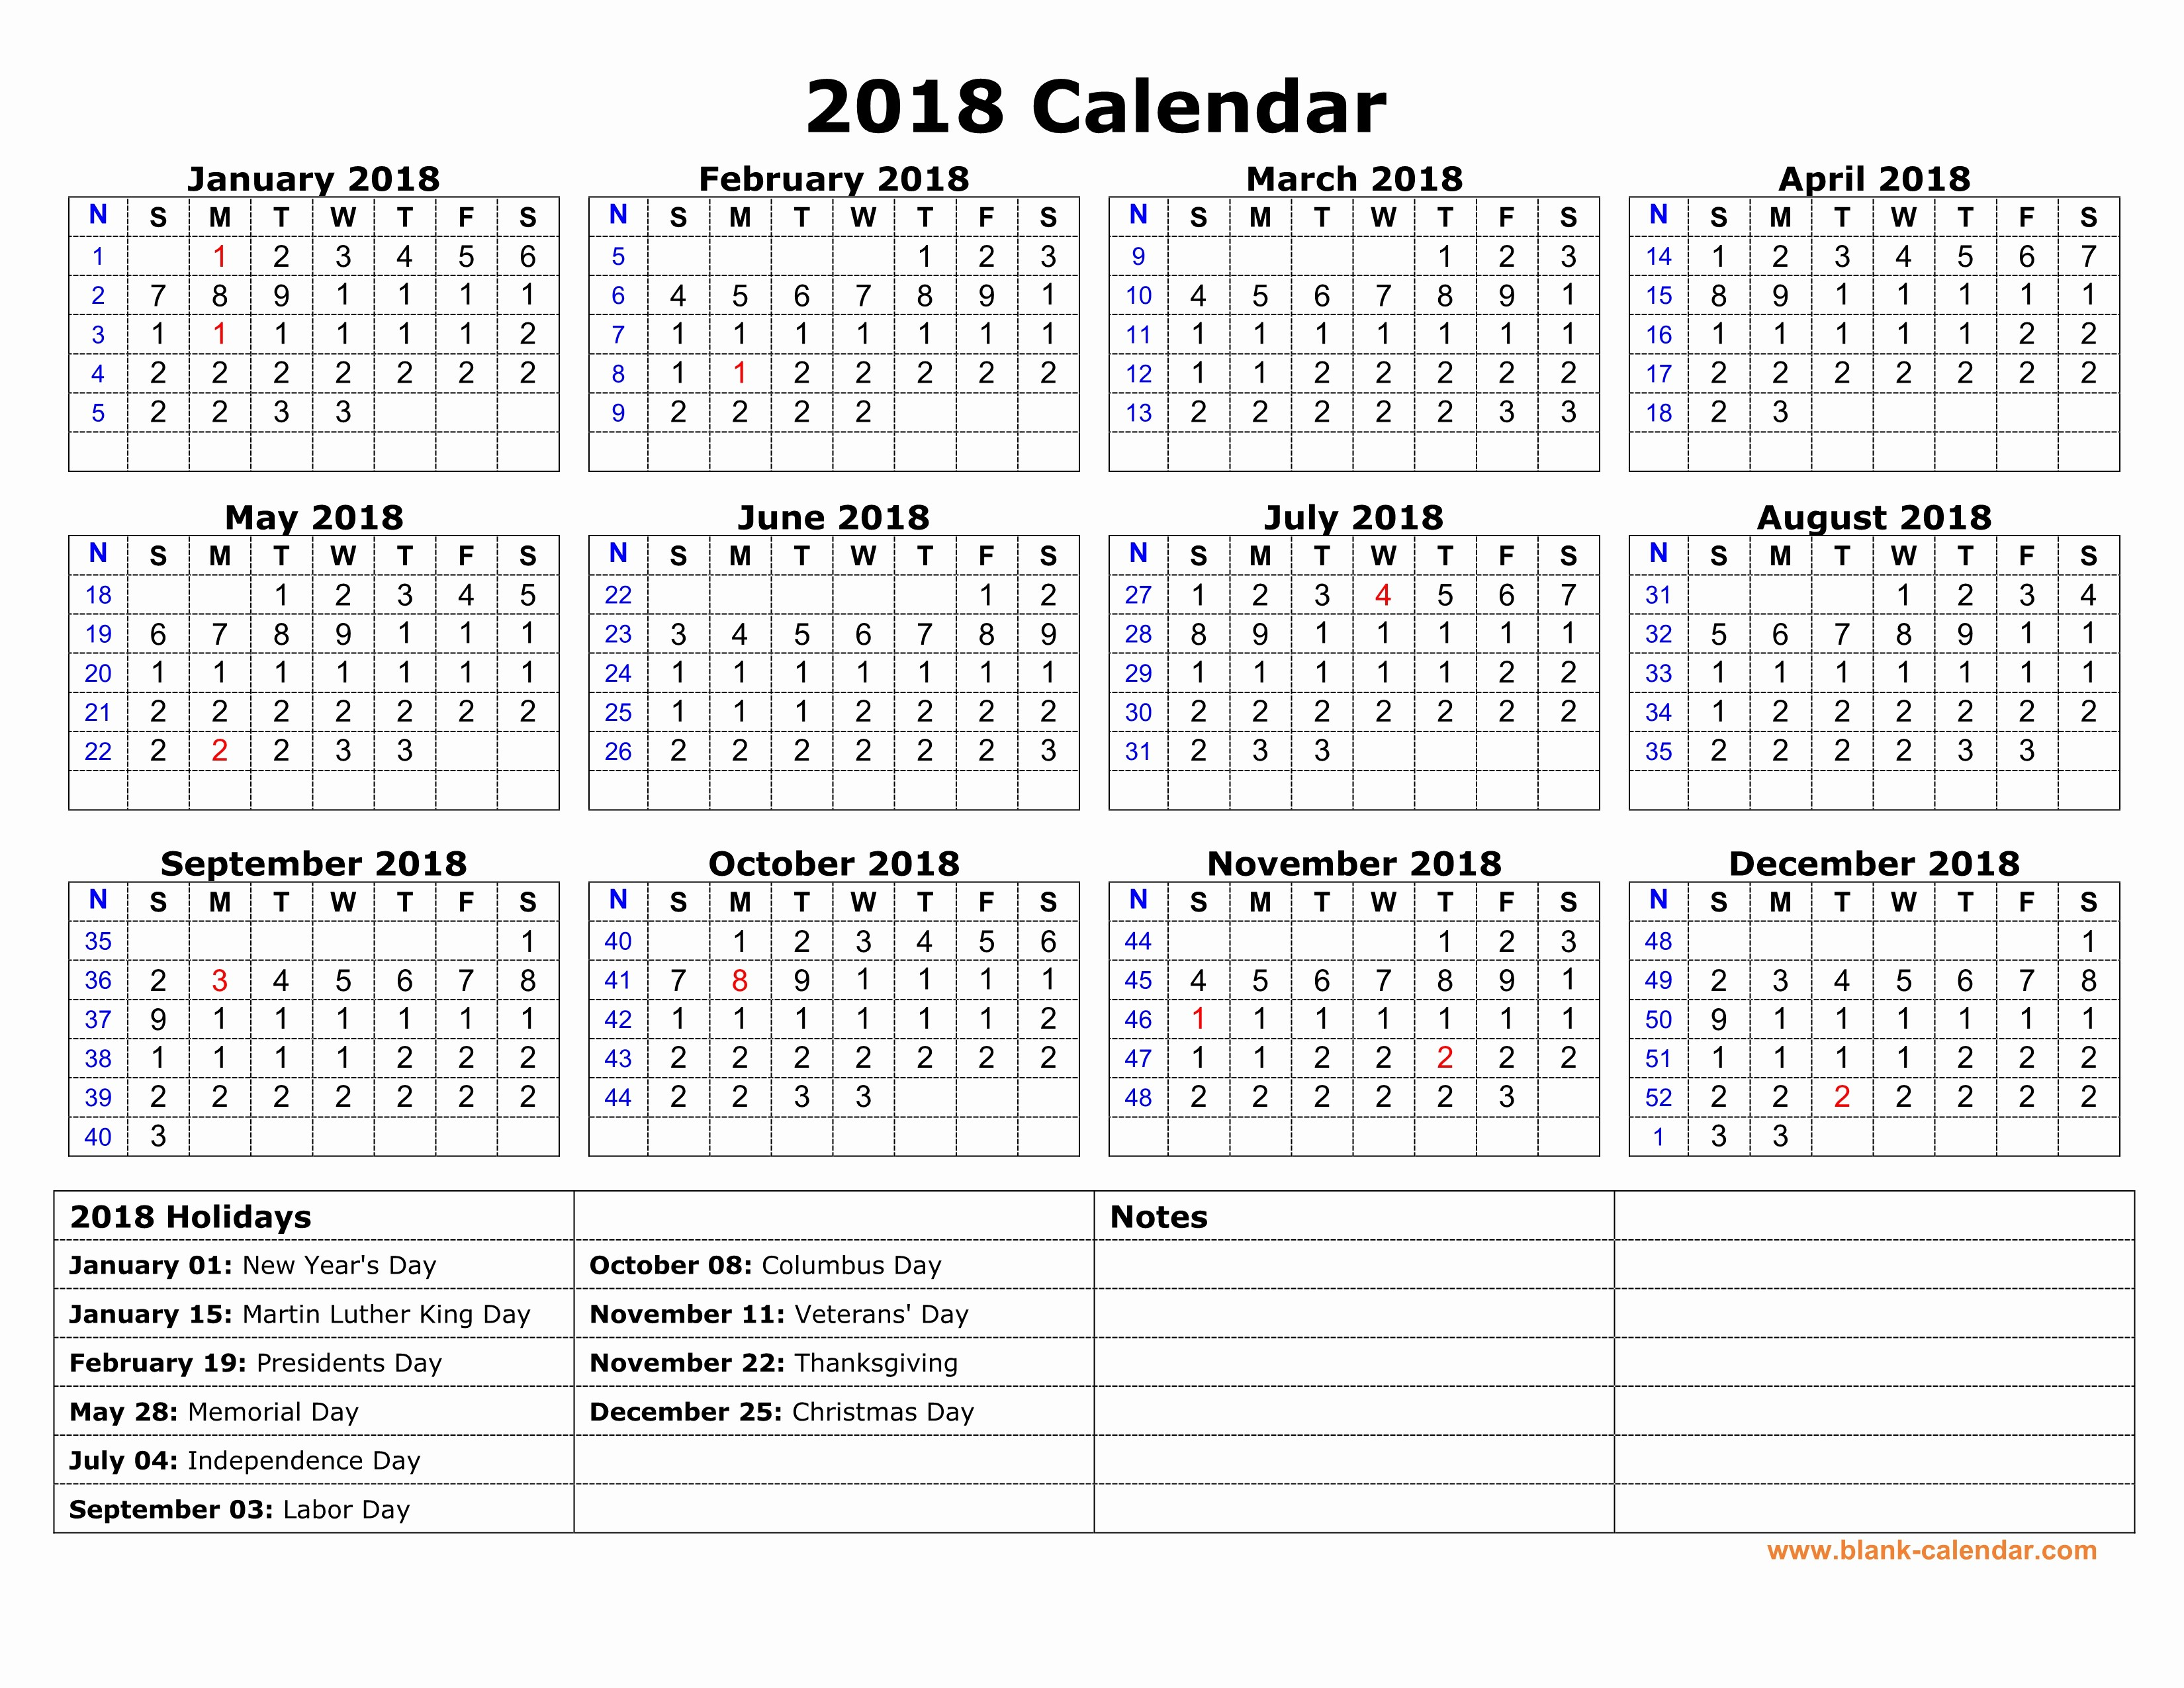 Calendar 2018 Printable with Holidays Beautiful Free Download Printable Calendar 2018 with Us Federal